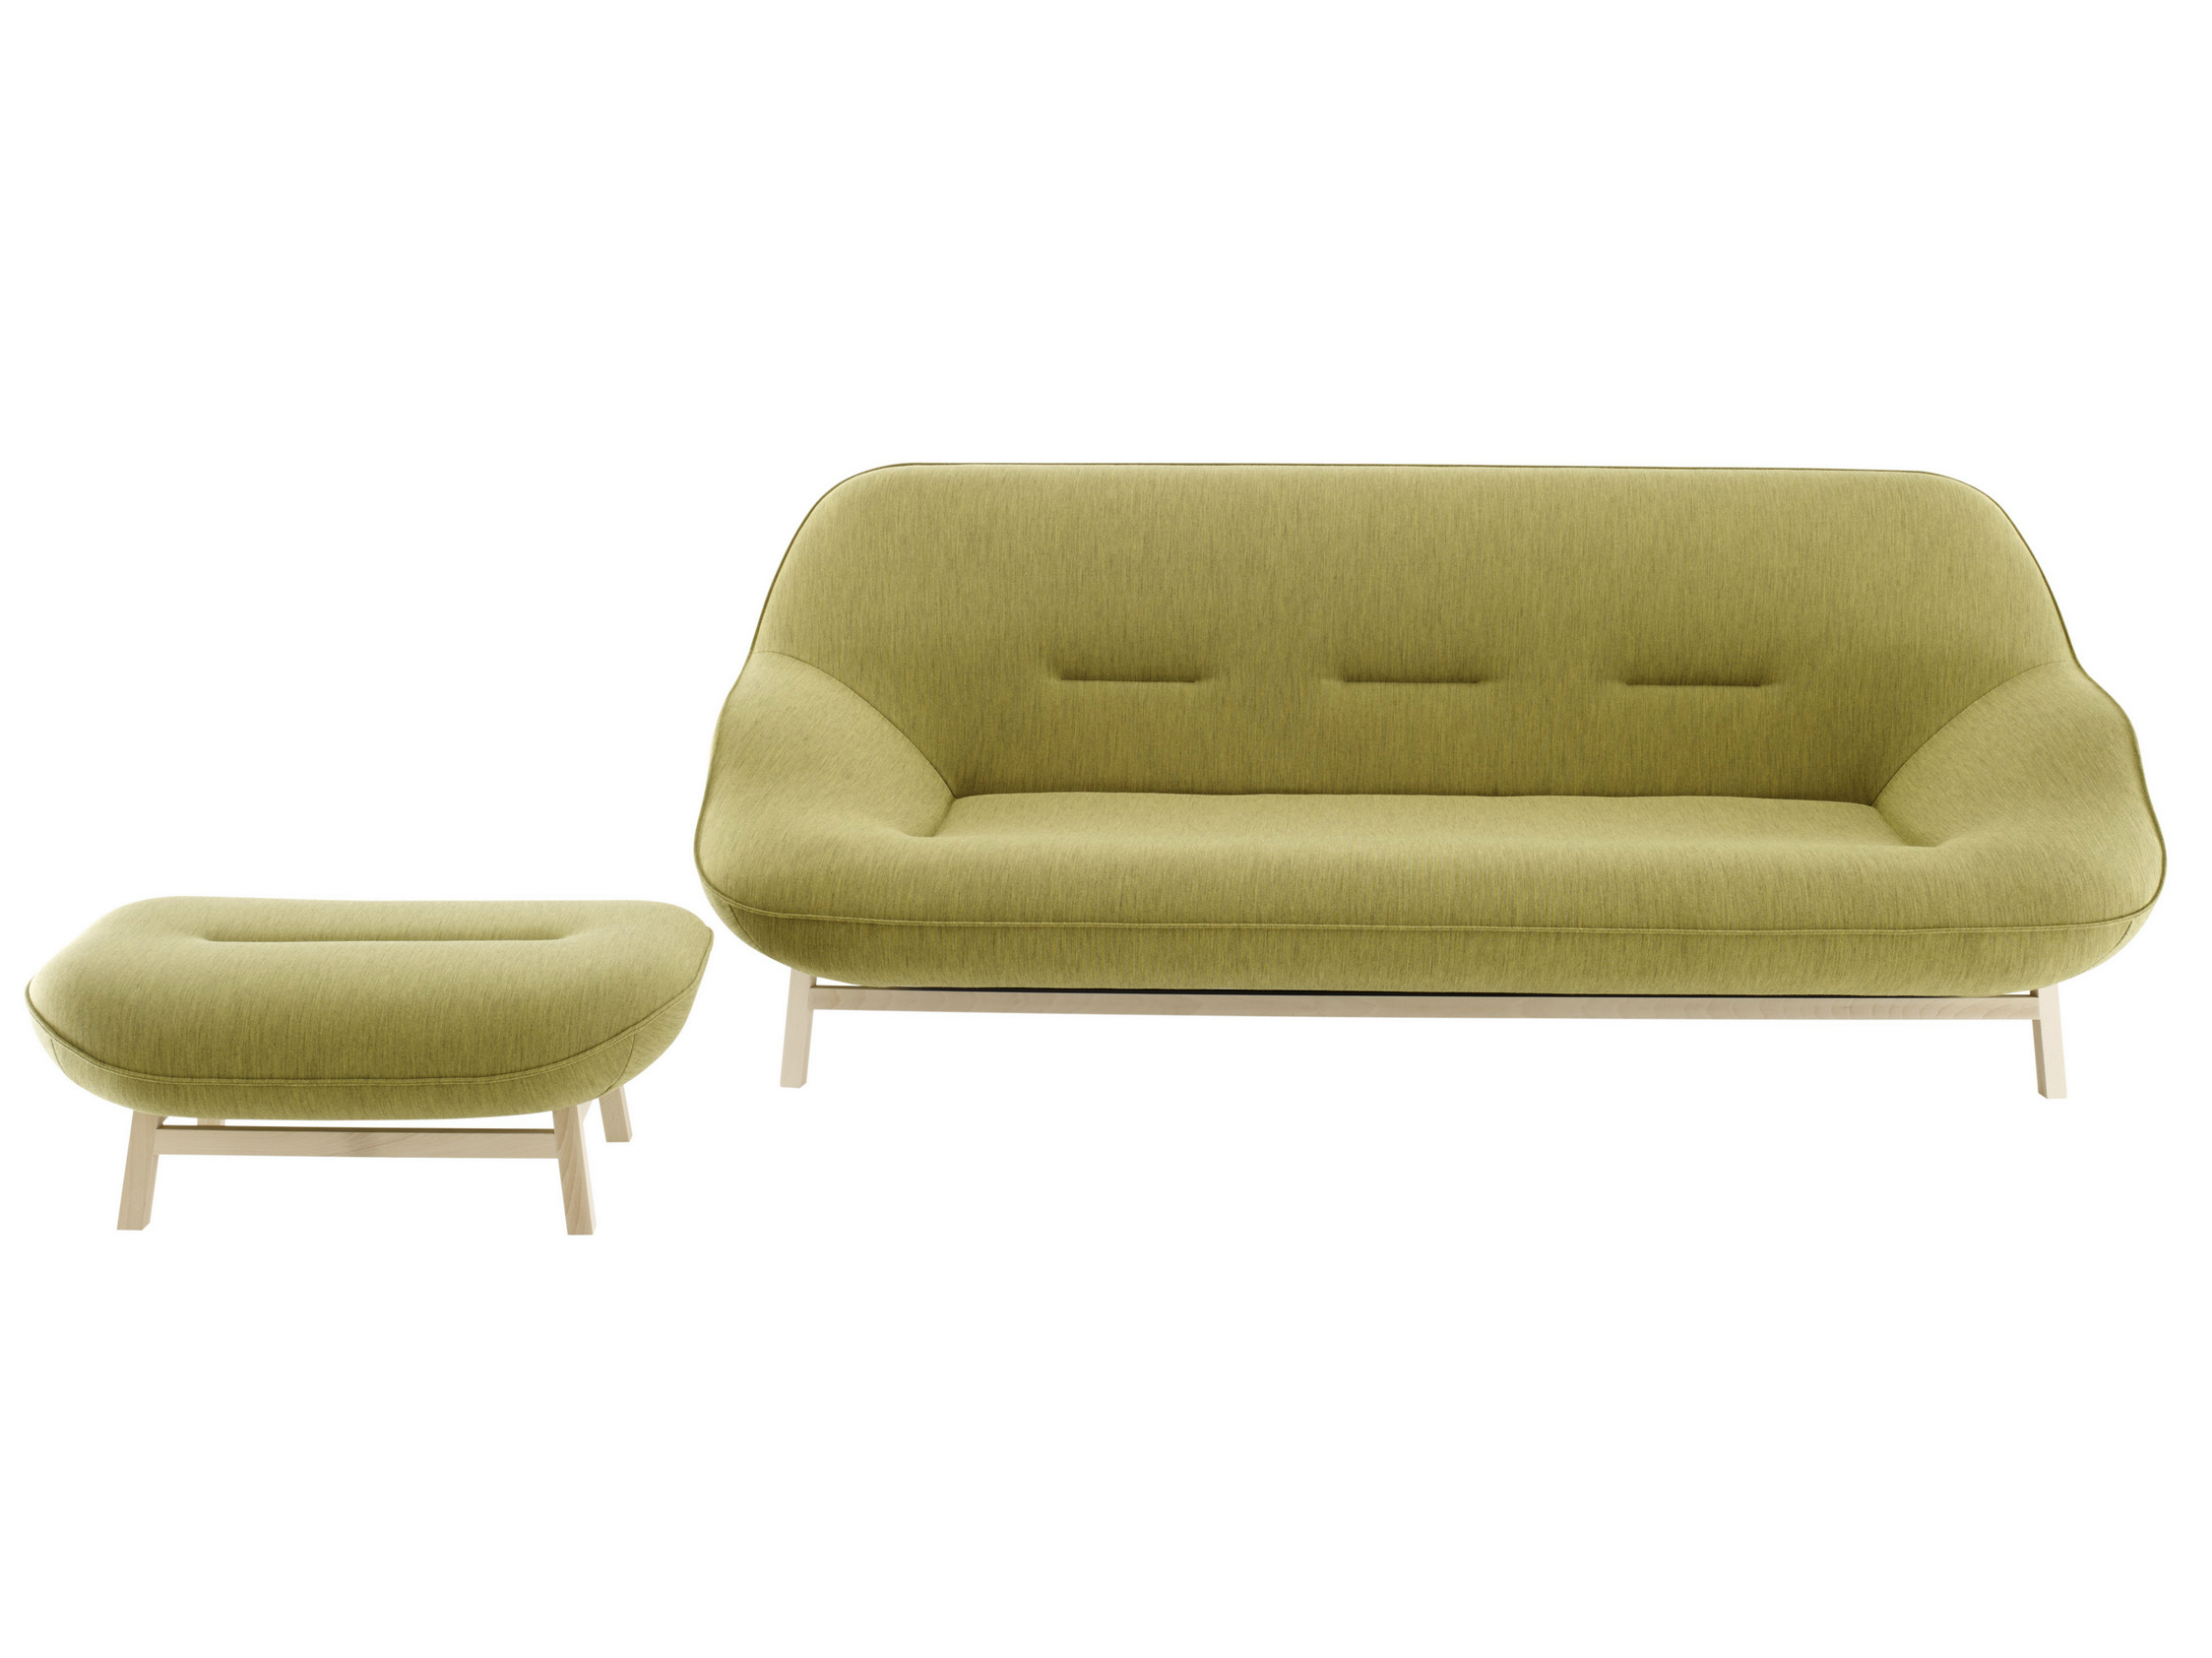 Cosse Sofa By Ligne Roset Sohomod Blog